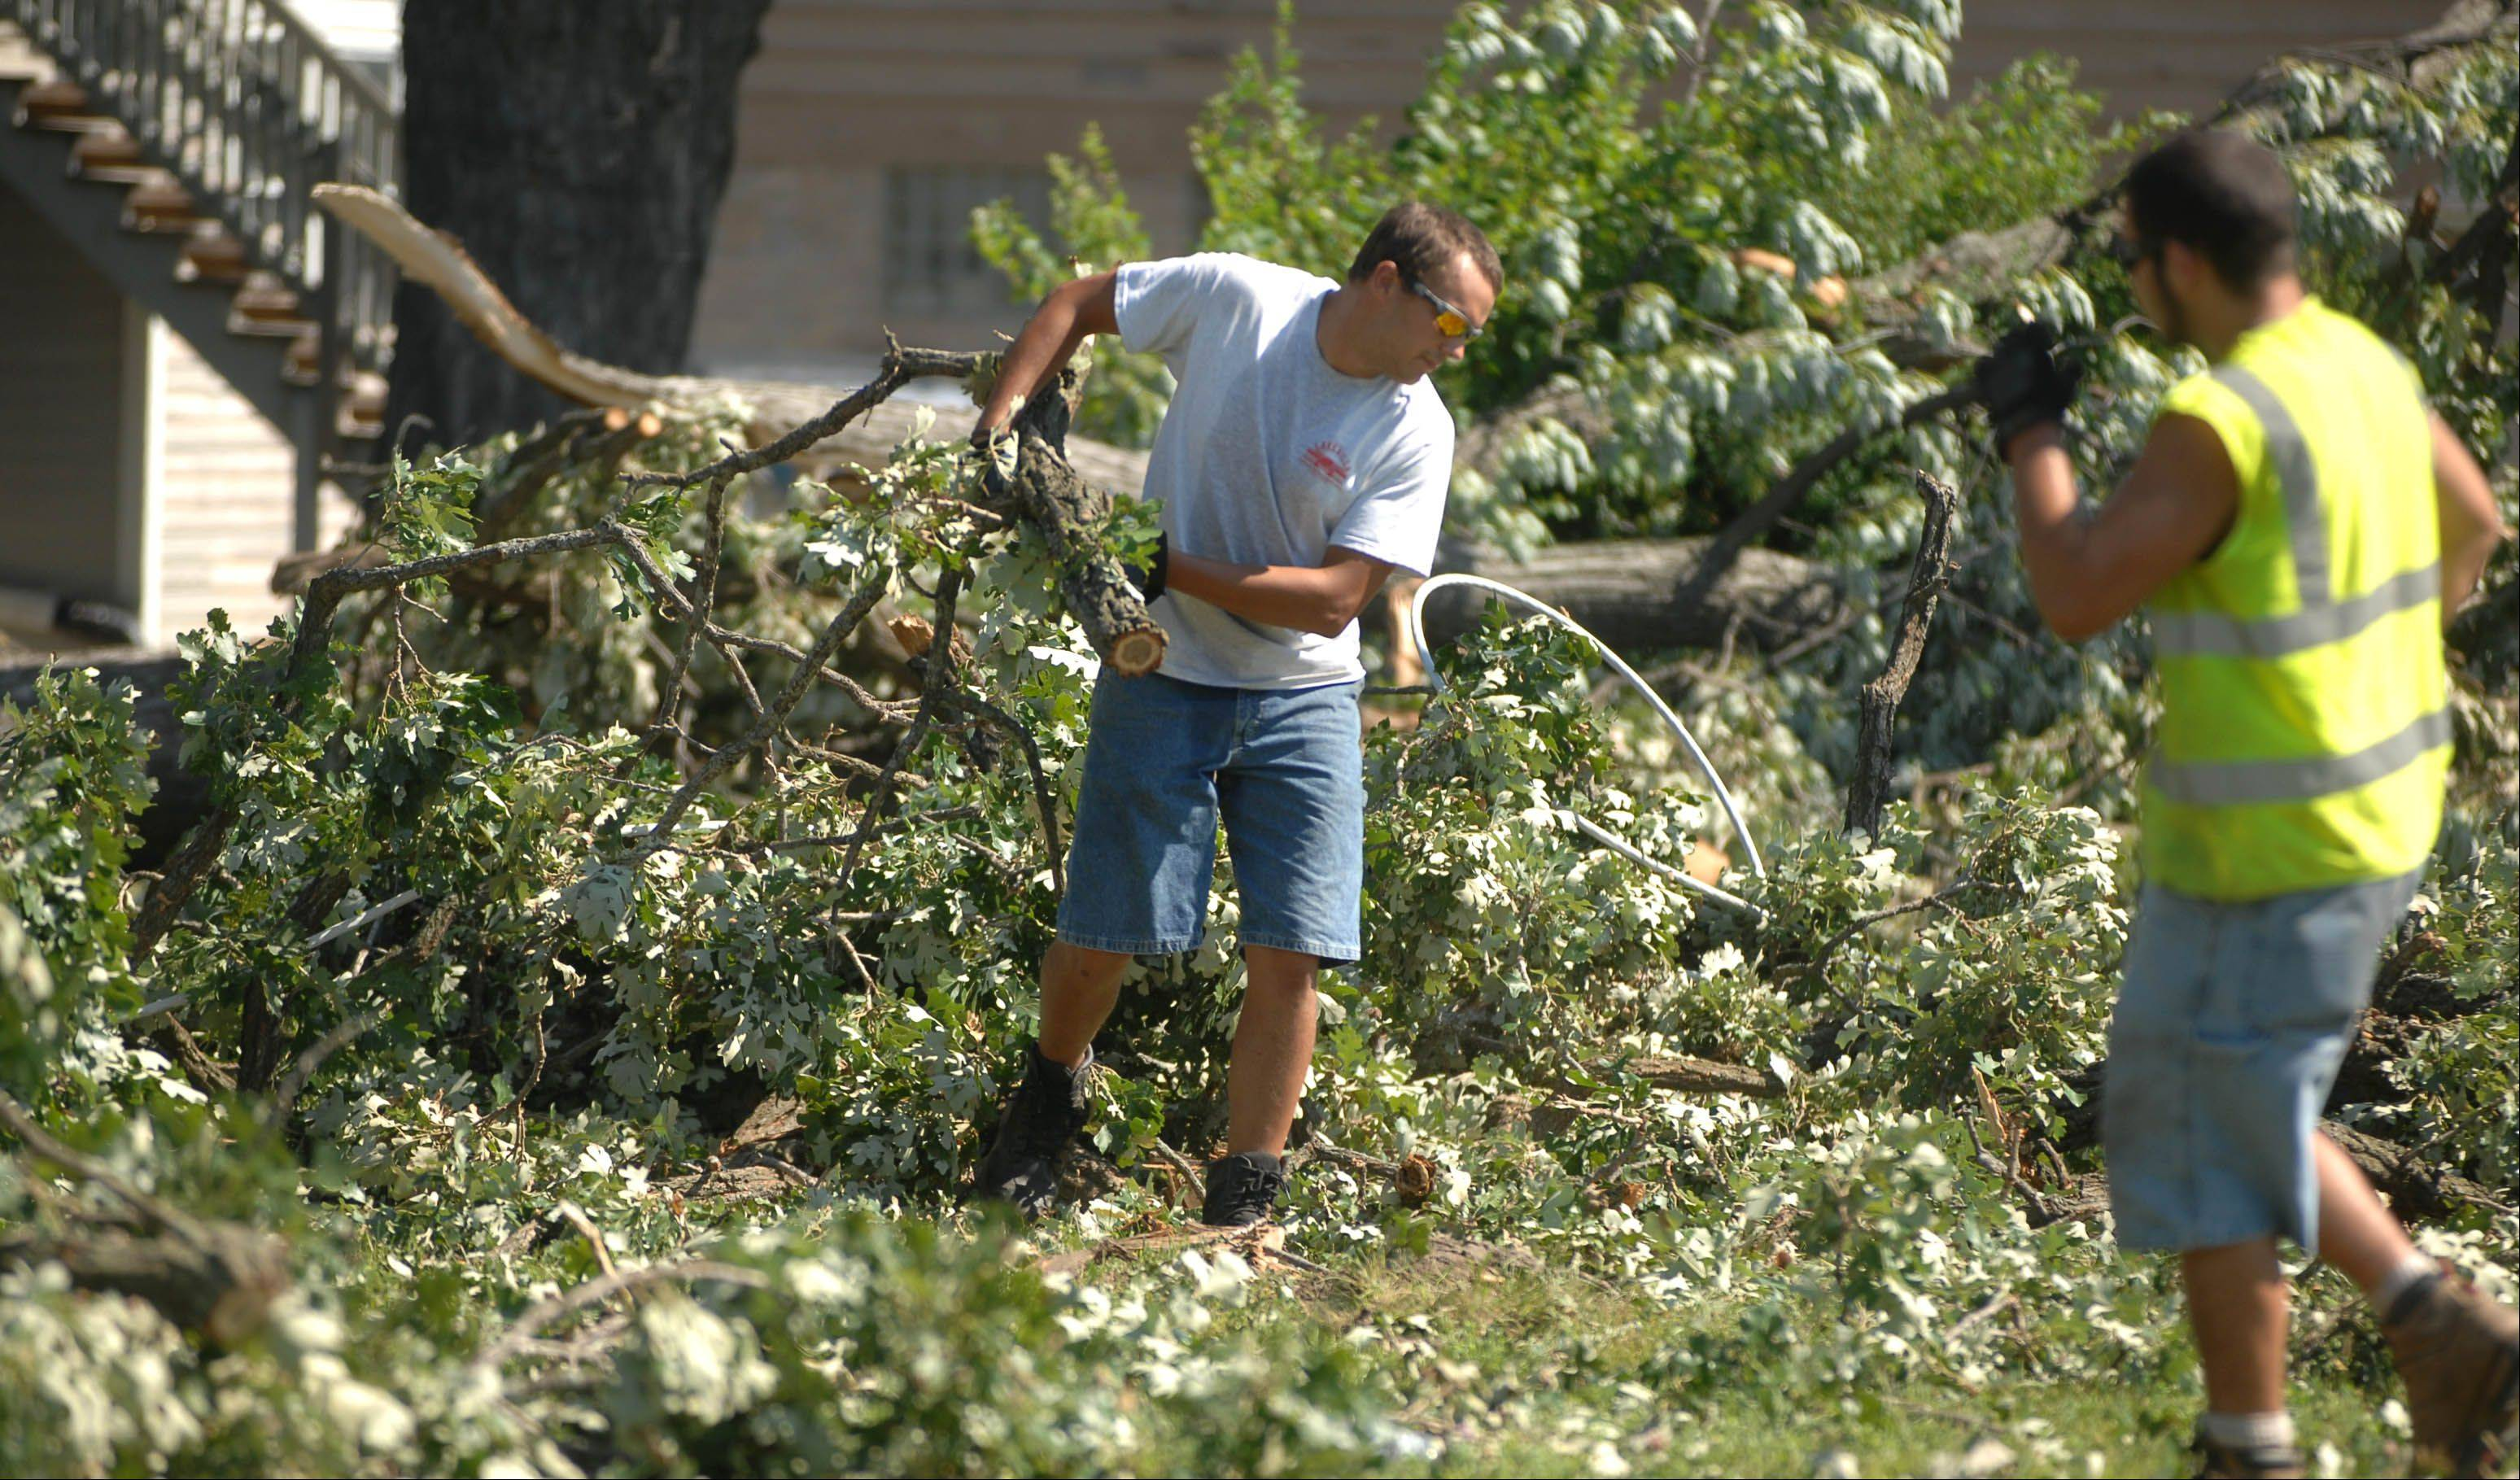 Lake Villa Public Works crews continue clean up along Grand Ave. Tuesday morning following Monday's storm.